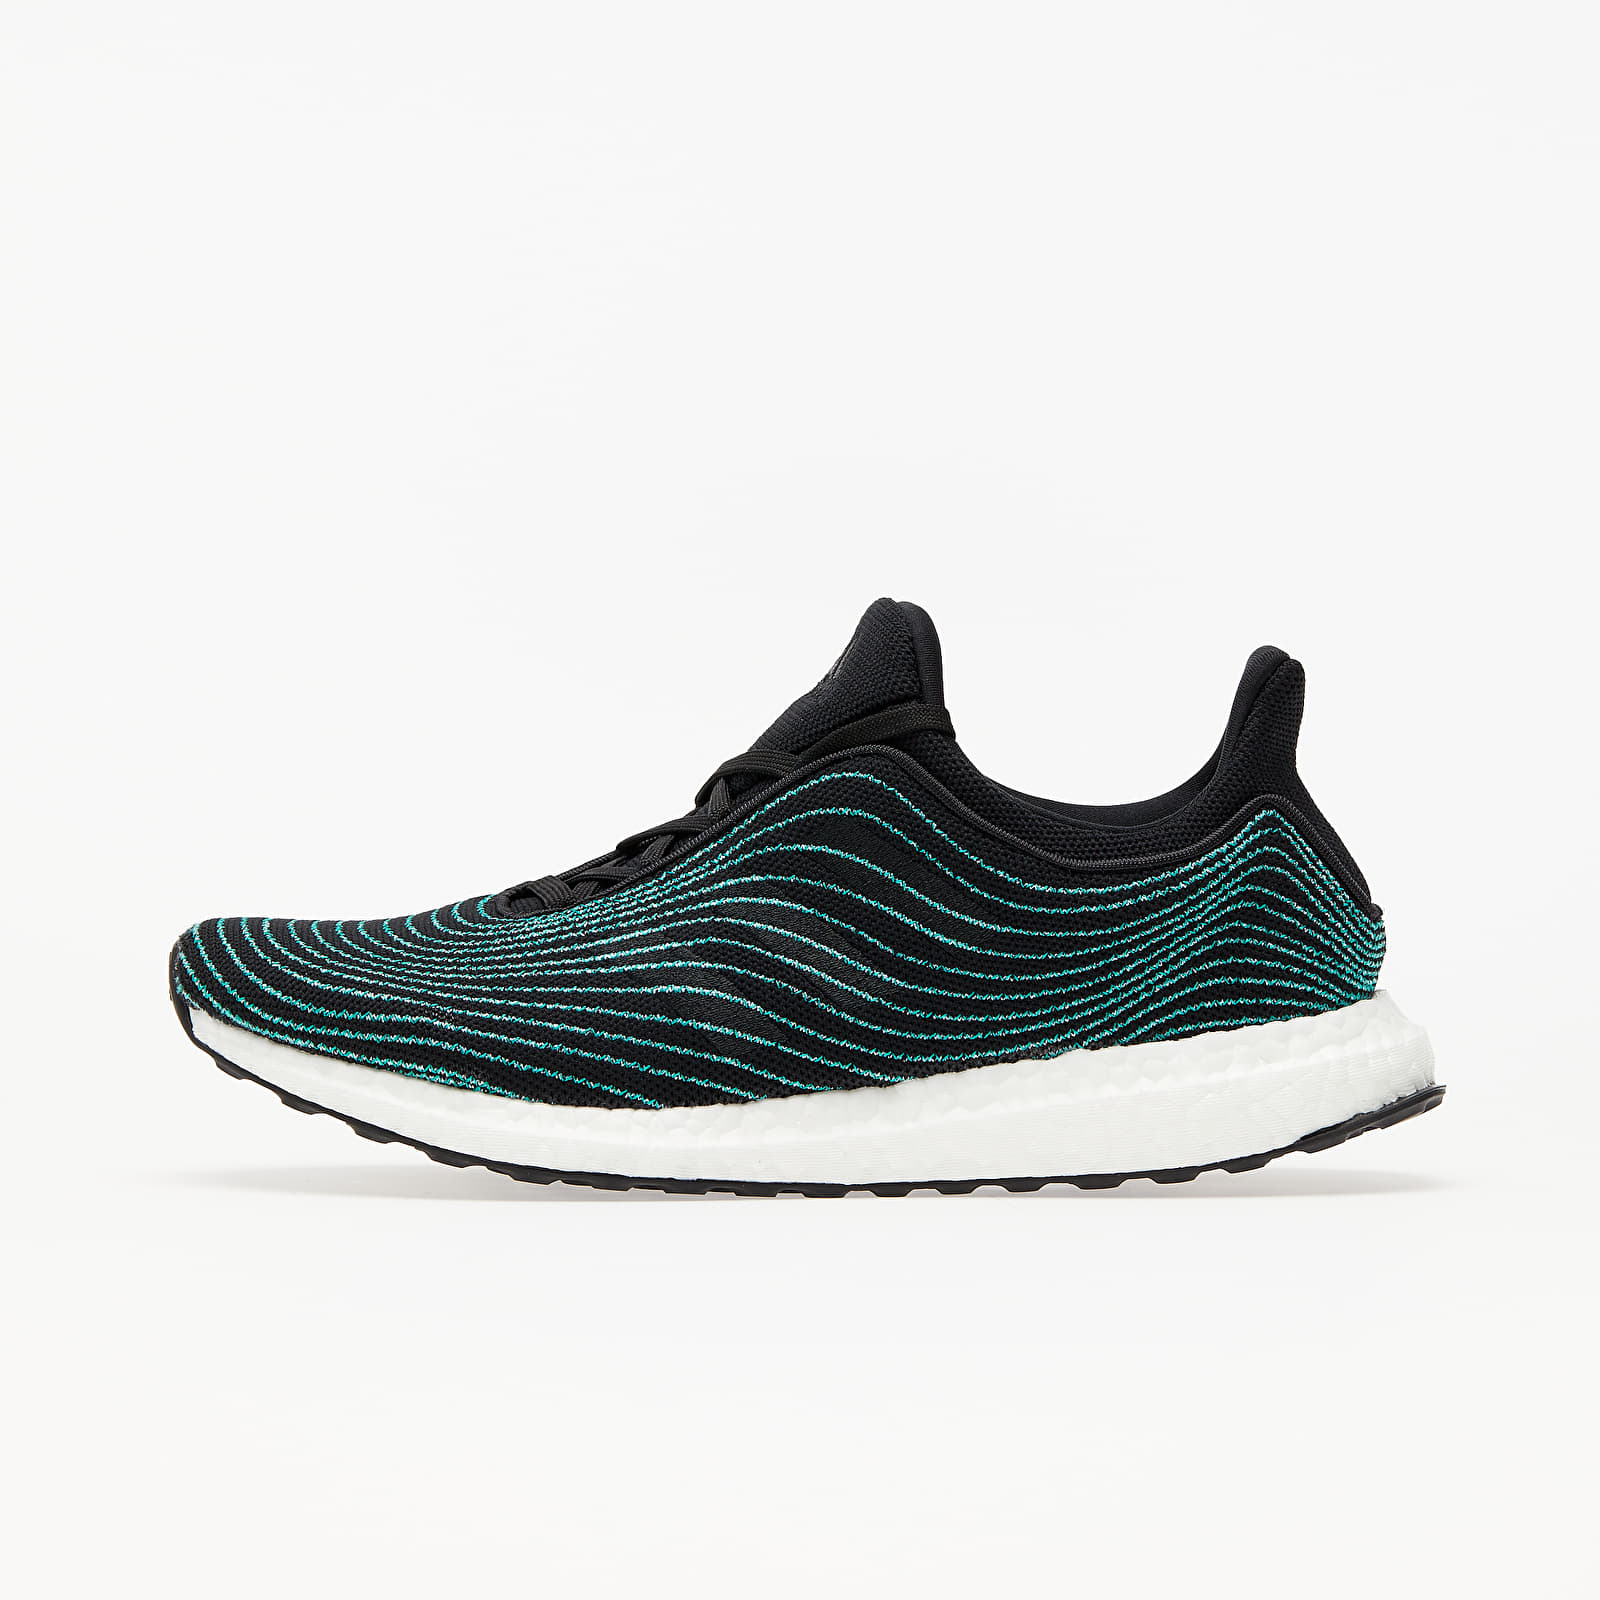 Men's shoes adidas UltraBOOST Dna Parley Core Black/ Core Black/ Blue Spirit